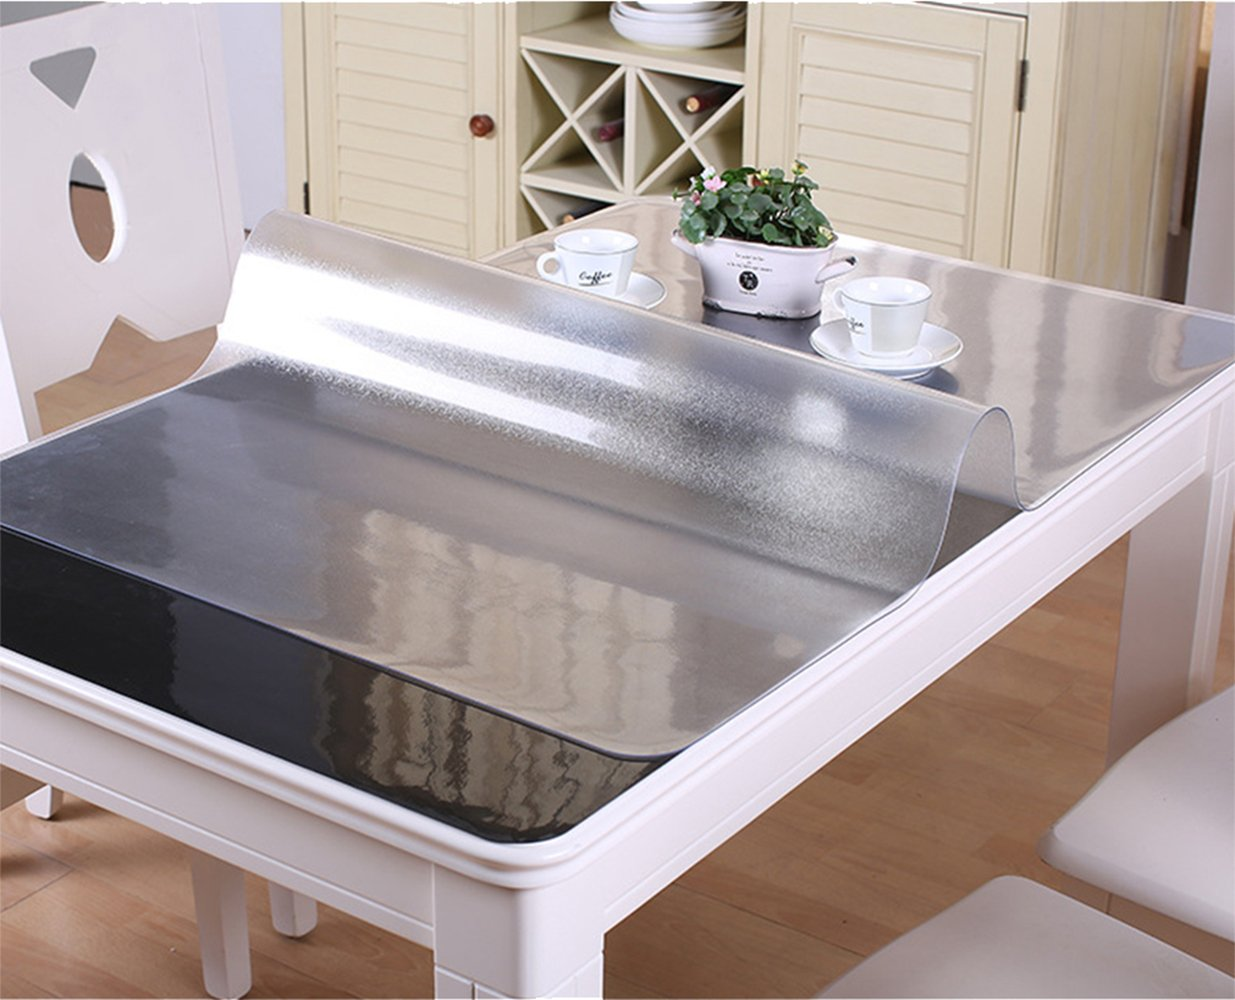 VALLEY TREE Table Cover, Clear Table Cover Protector, Soft Glass PVC Tablecloth, Table Pads, 1.5mm(0.059inch) Thickness Desk Top Pad, Transparent Plastic Tablecloth Mat for Dinning Table/Desk